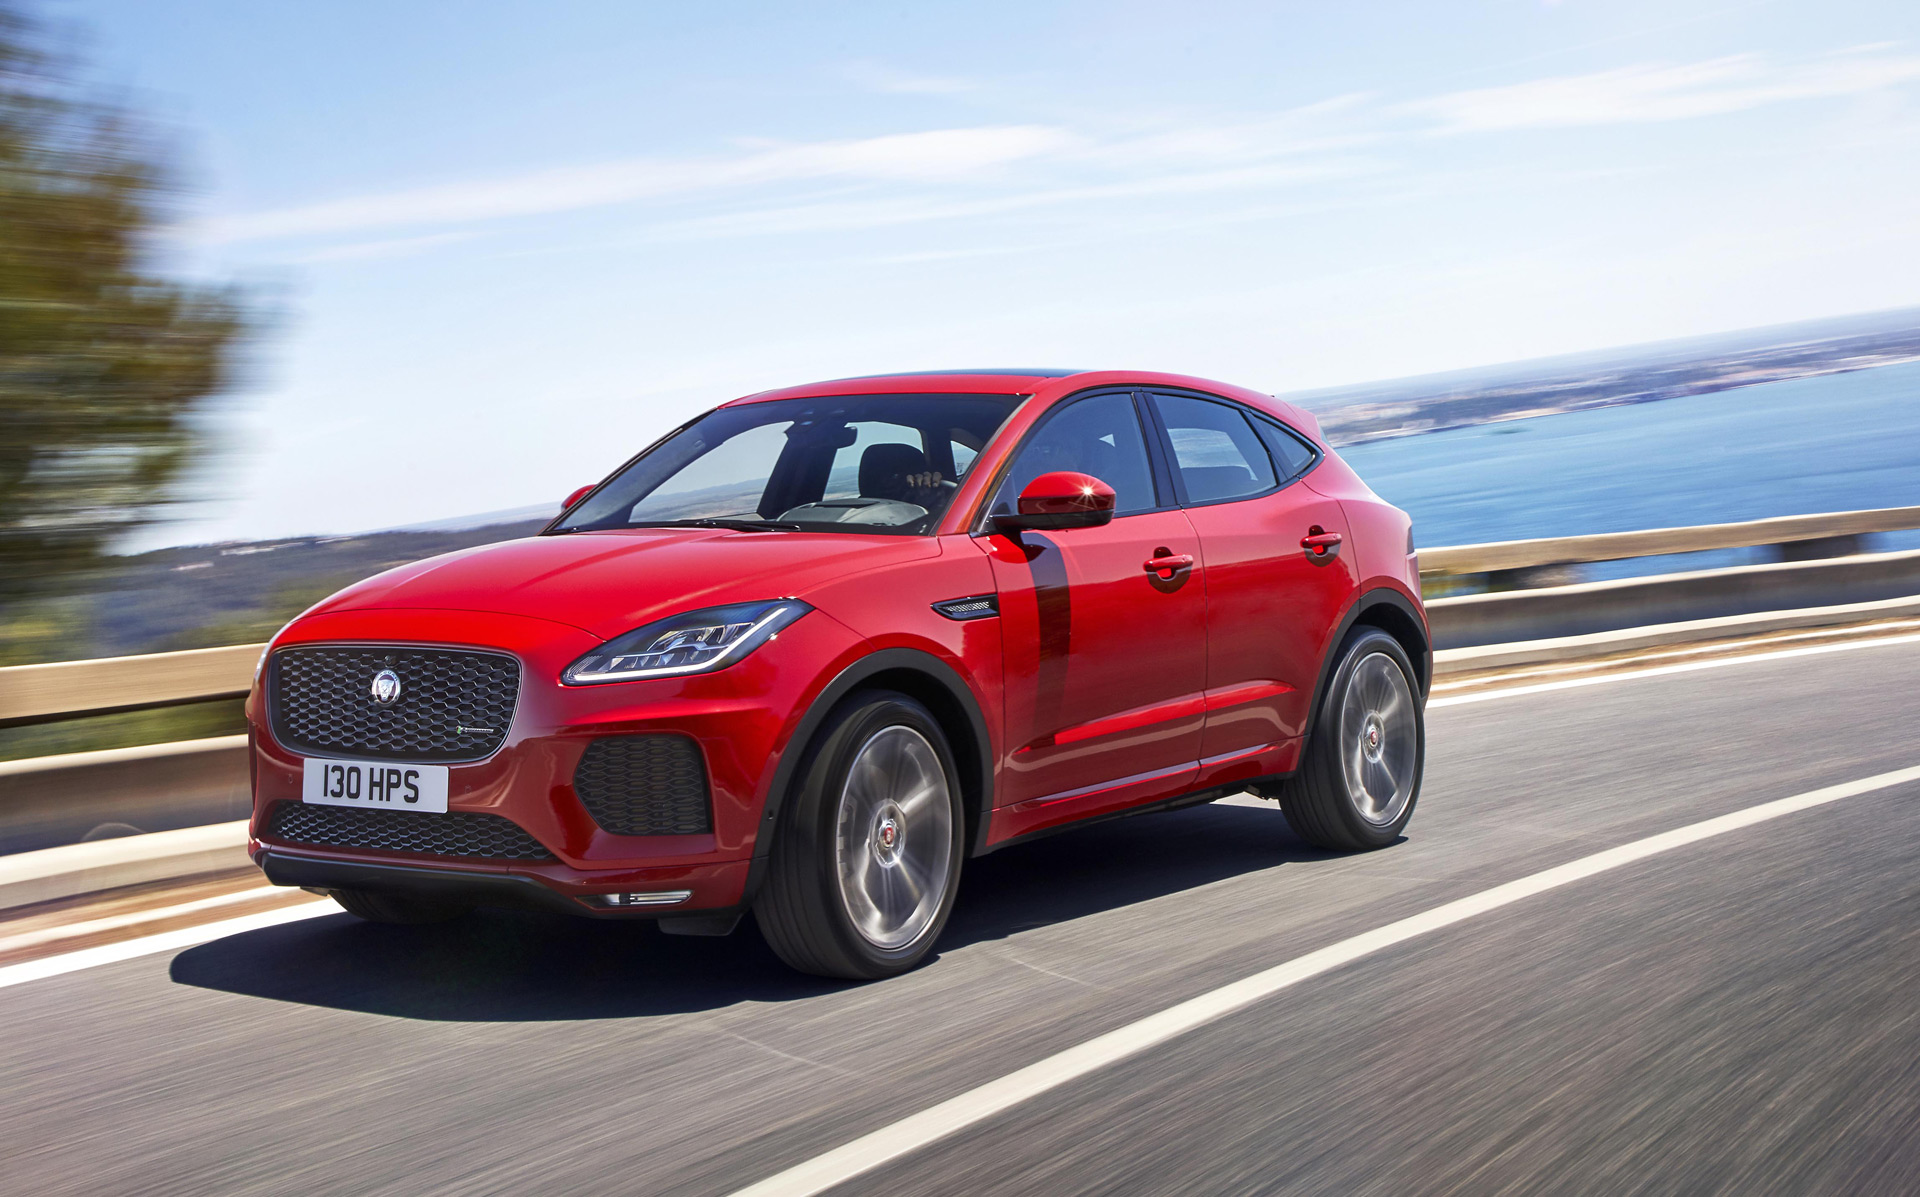 2018 Jaguar E-Pace Review, Ratings, Specs, Prices, and Photos - The Car Connection